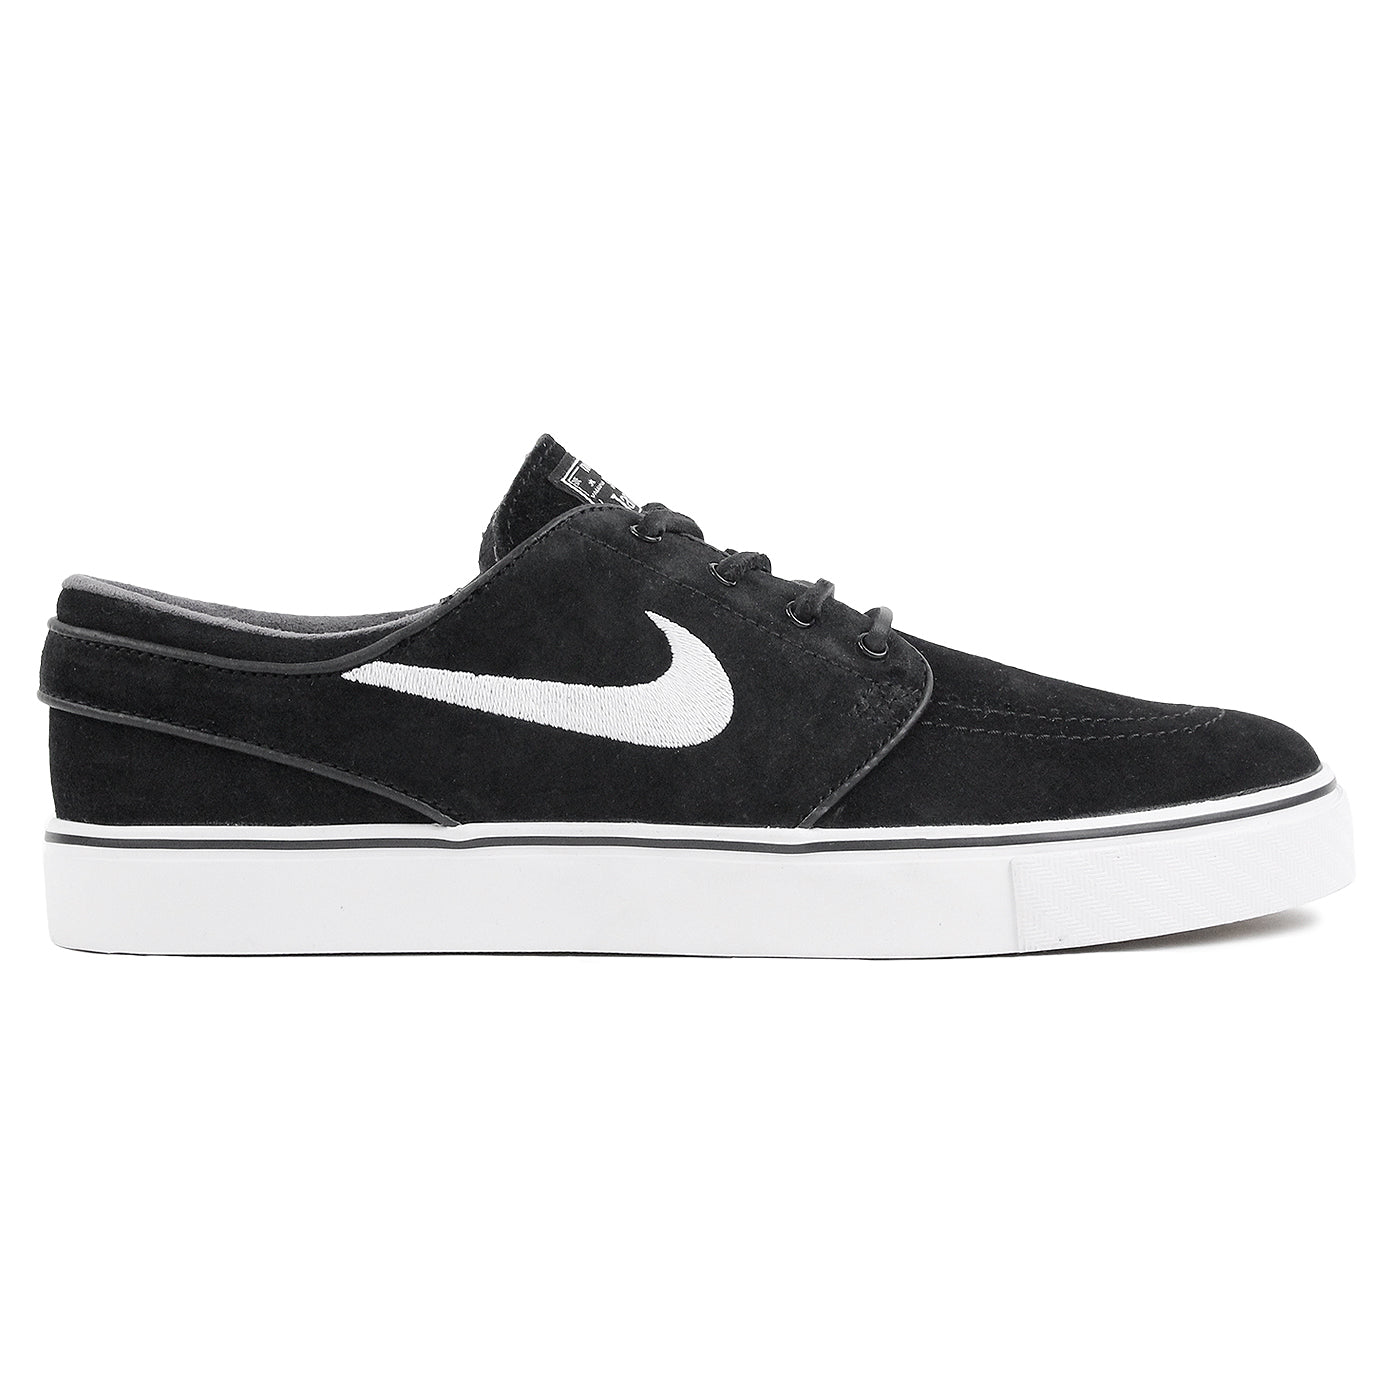 online retailer 6084e 18e1a Nike SB Stefan Janoski OG Shoes - Black   White - Gum Light Brown. £64.95